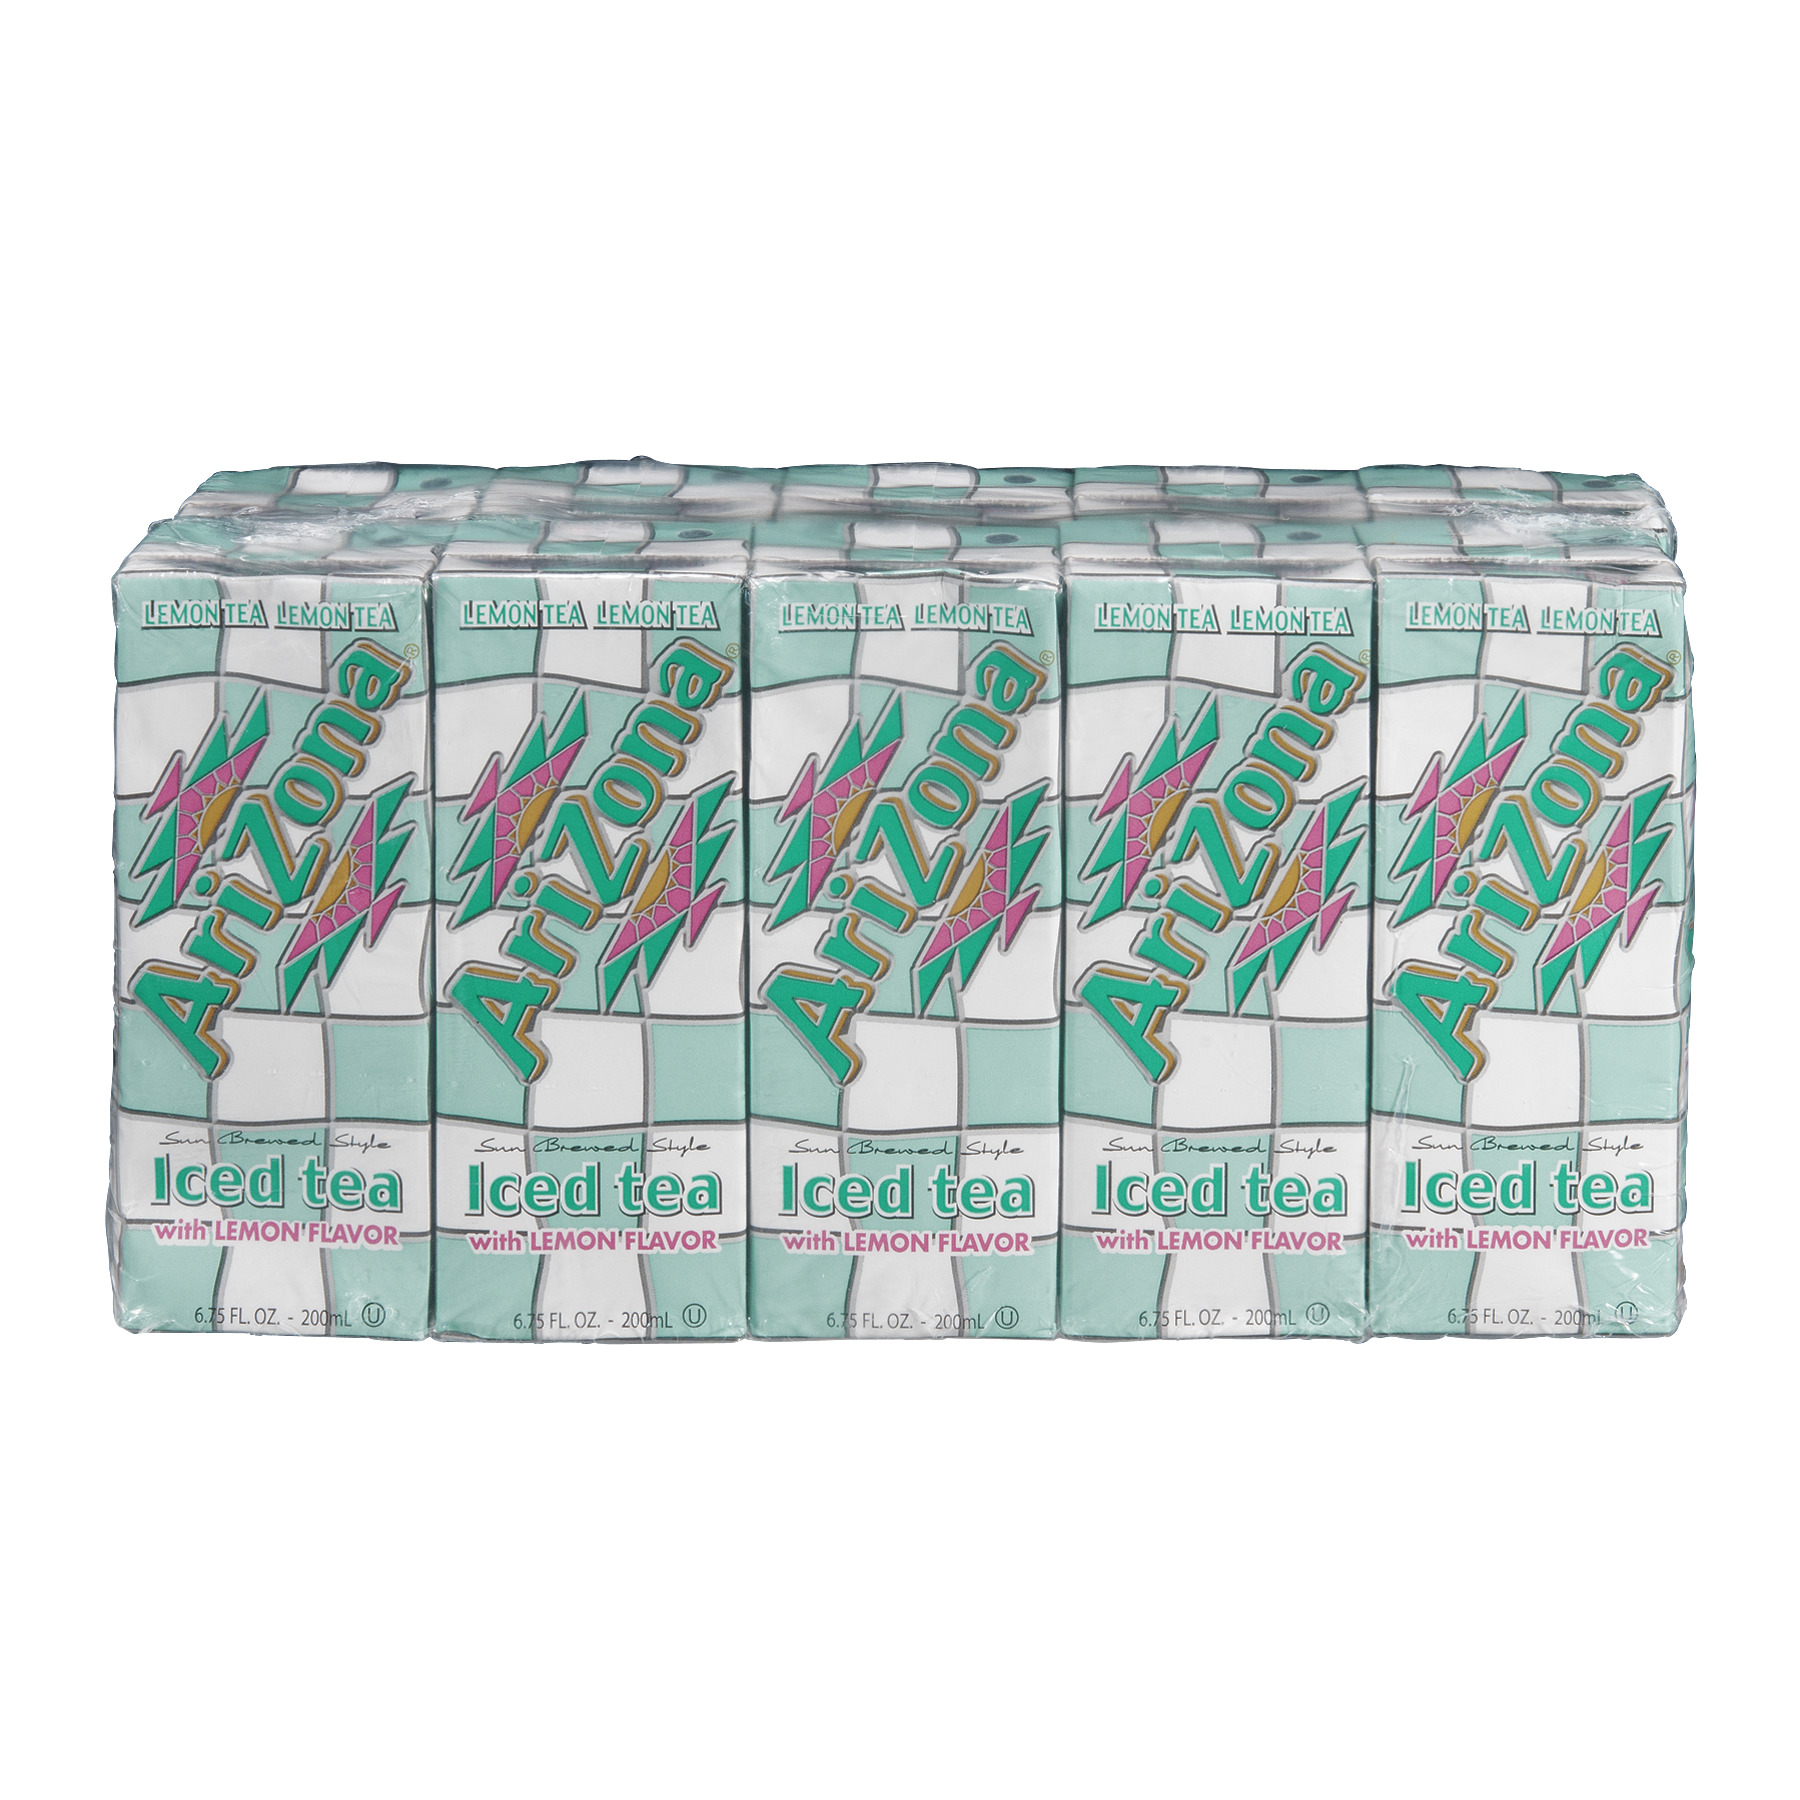 Arizona Iced Tea with Lemon Flavor - 10 CT6.75 FL OZ